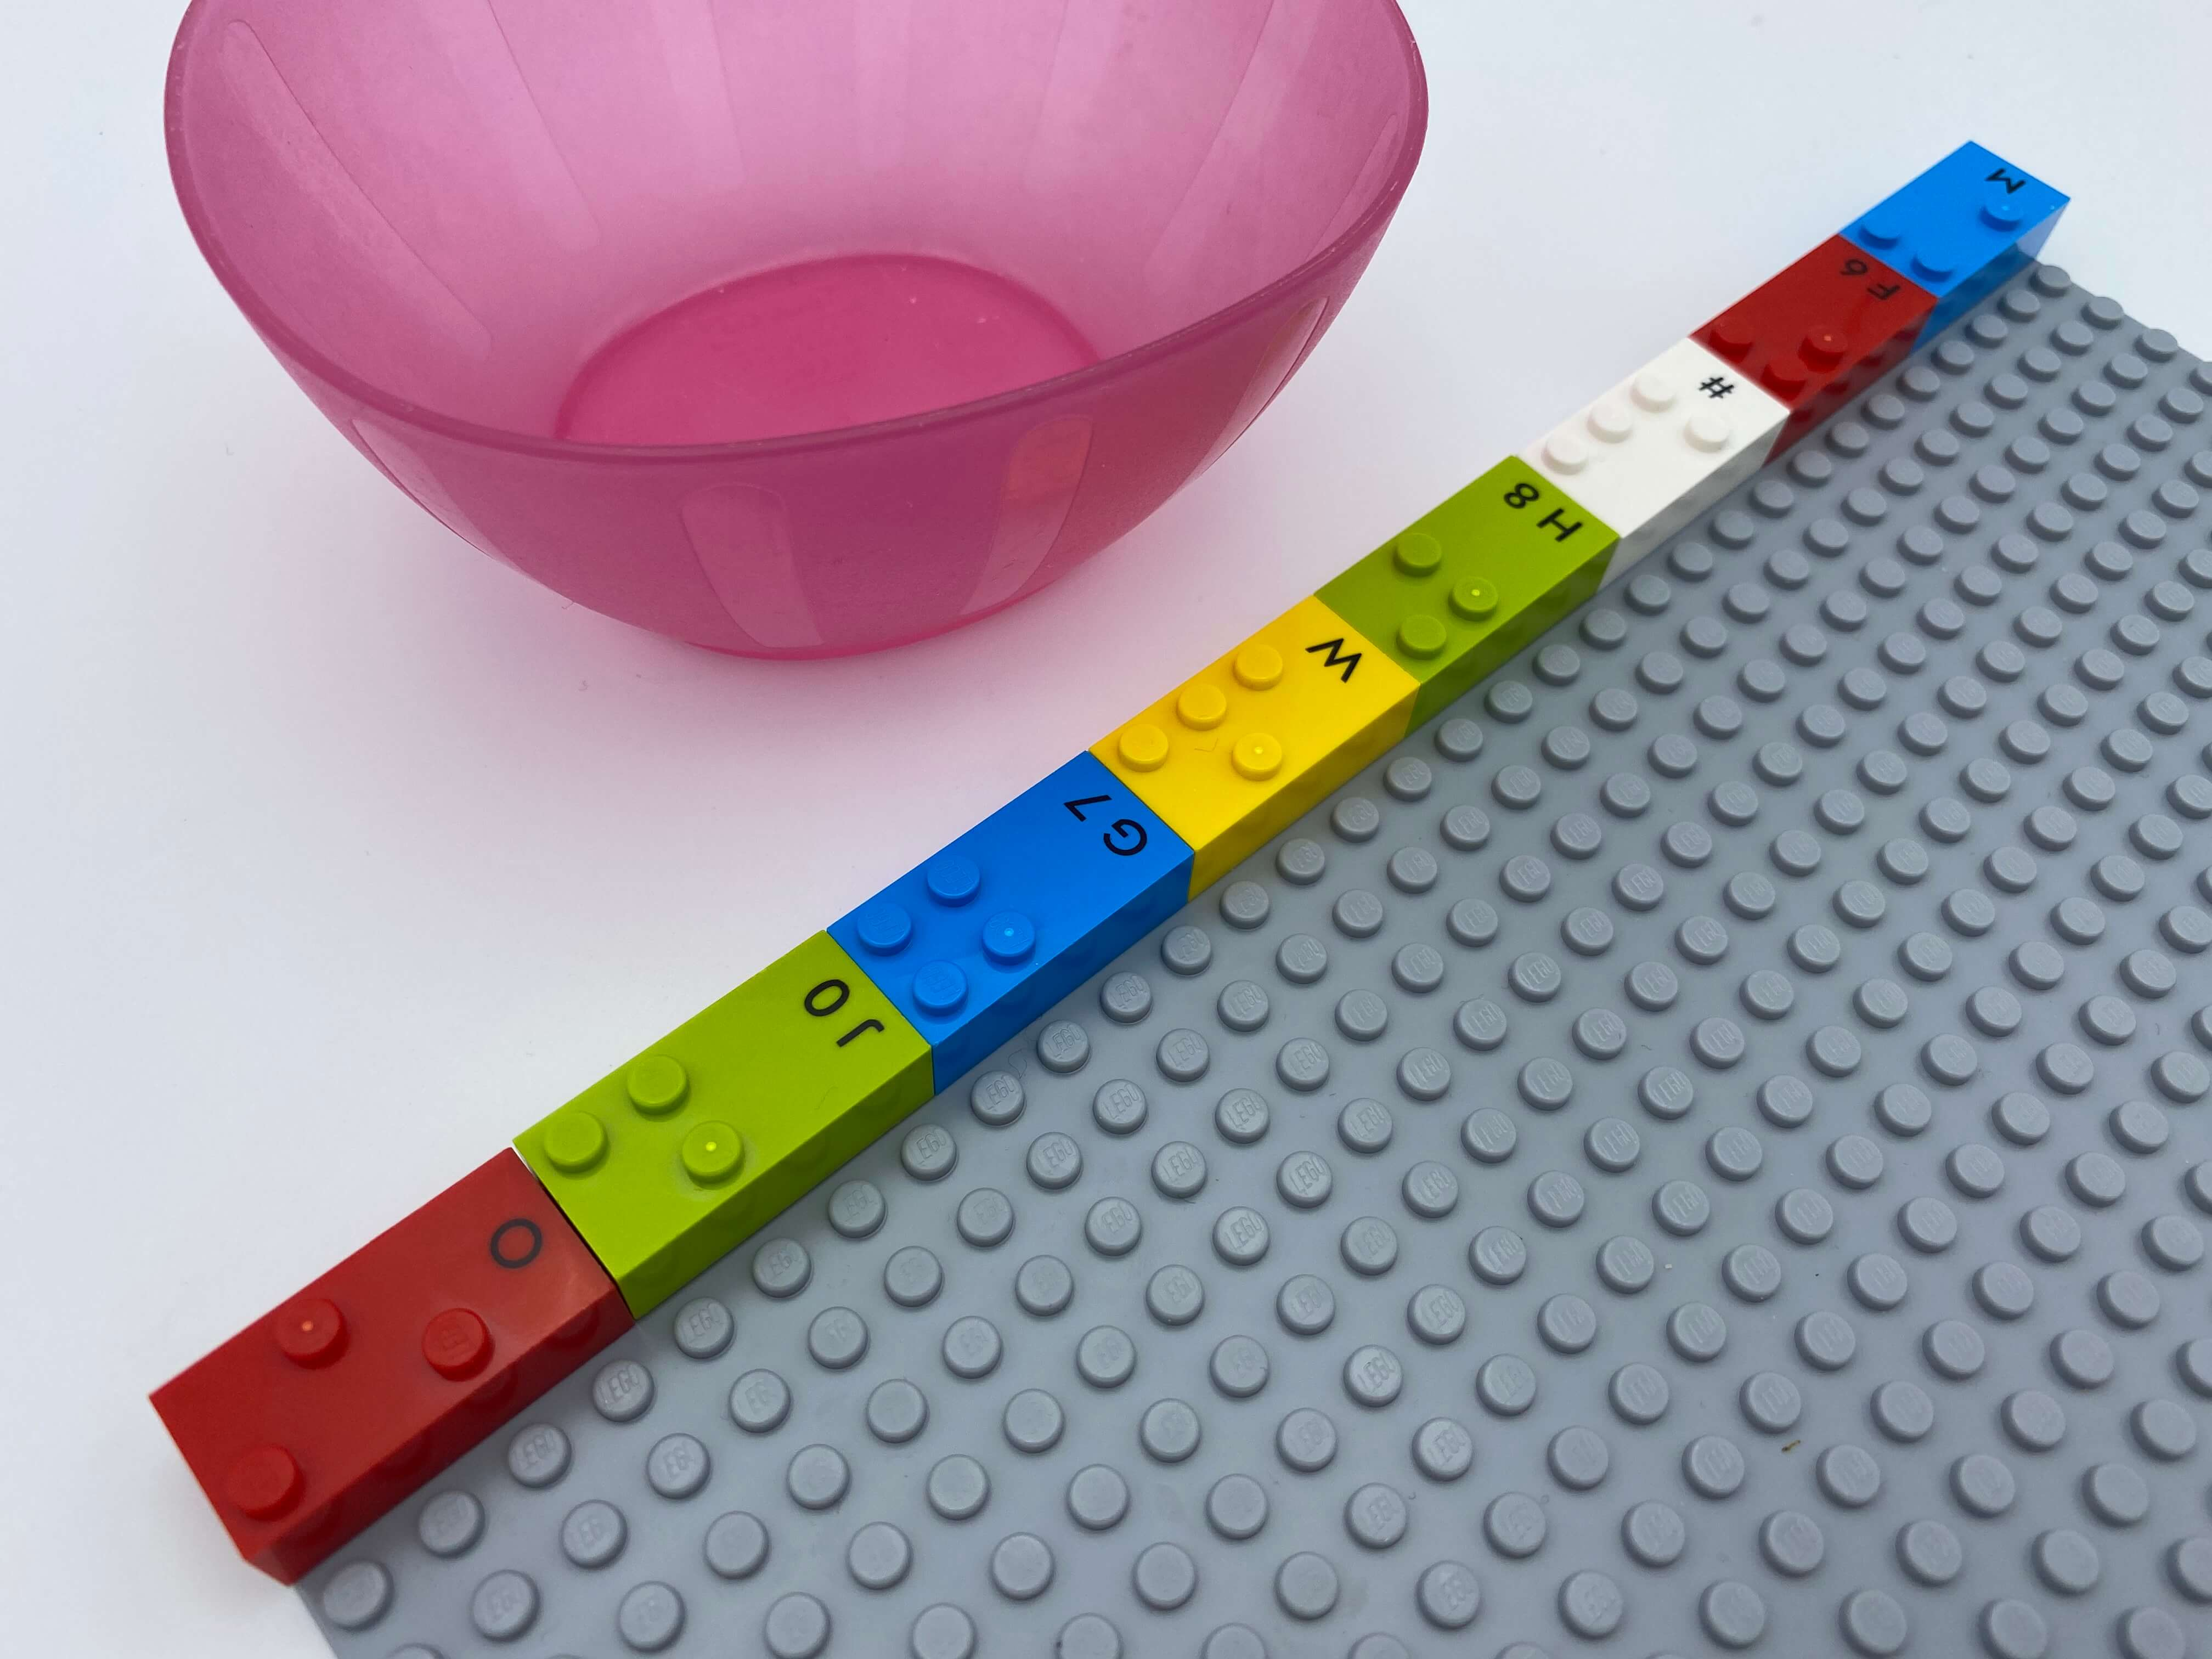 A horizontal row of 8 horizontal bricks on top of the base plate, an empty bowl.